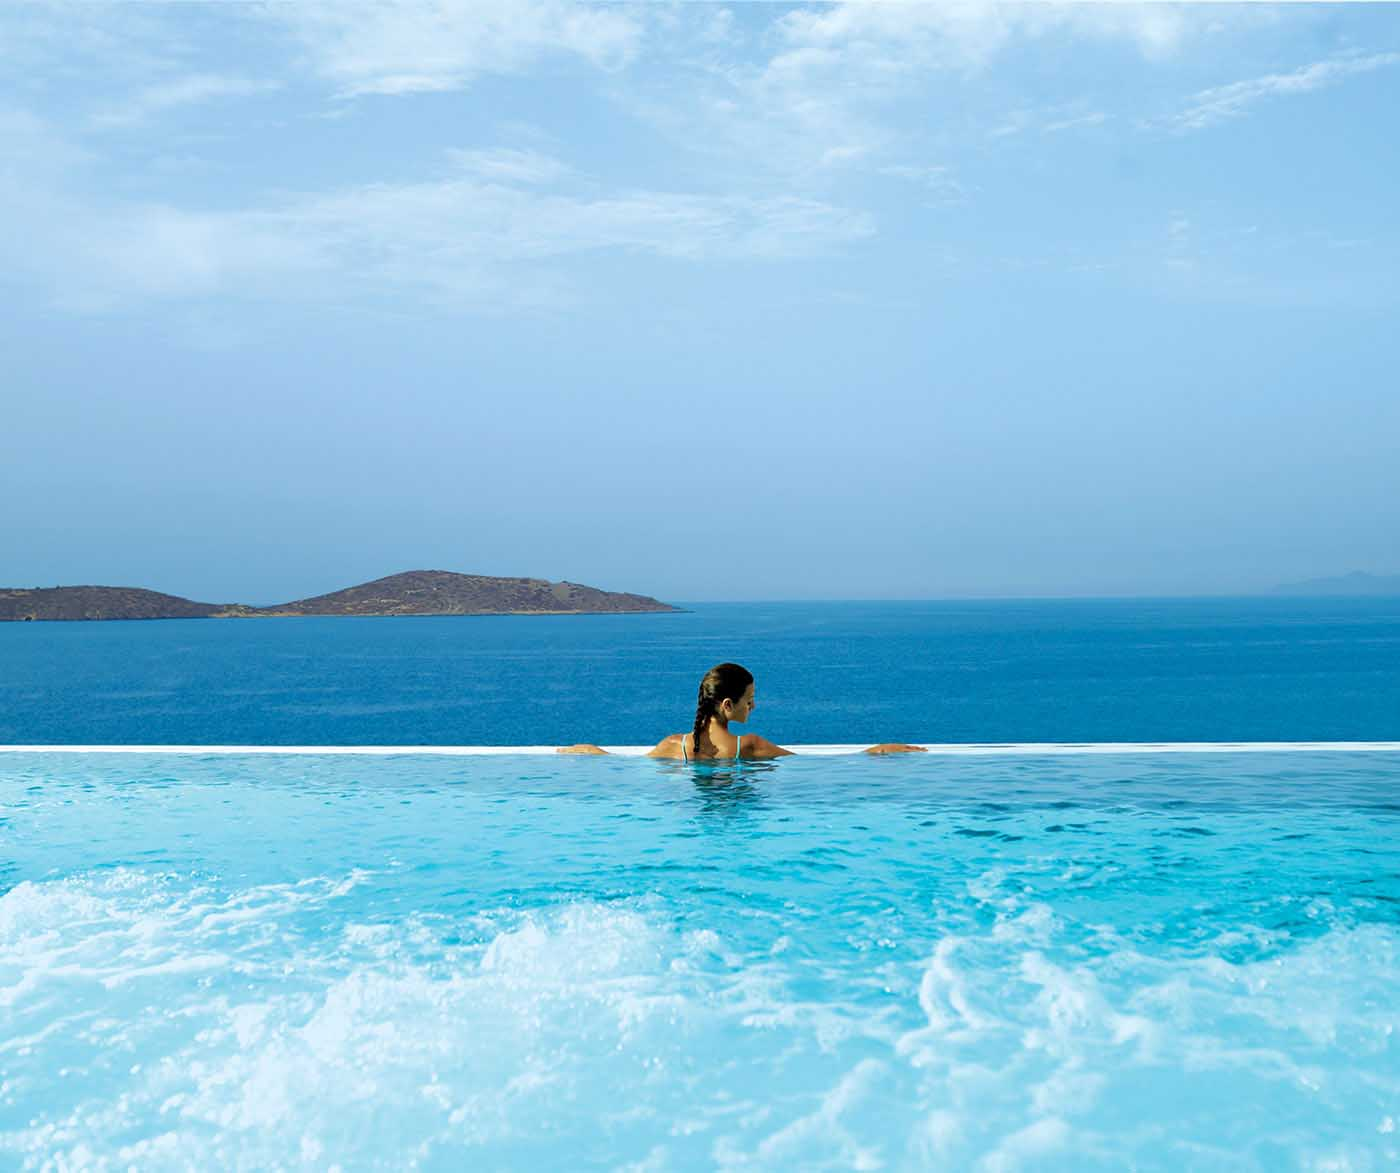 Crete hotels & resorts, 50% discount for early bookings, Crete, Greece, Europe